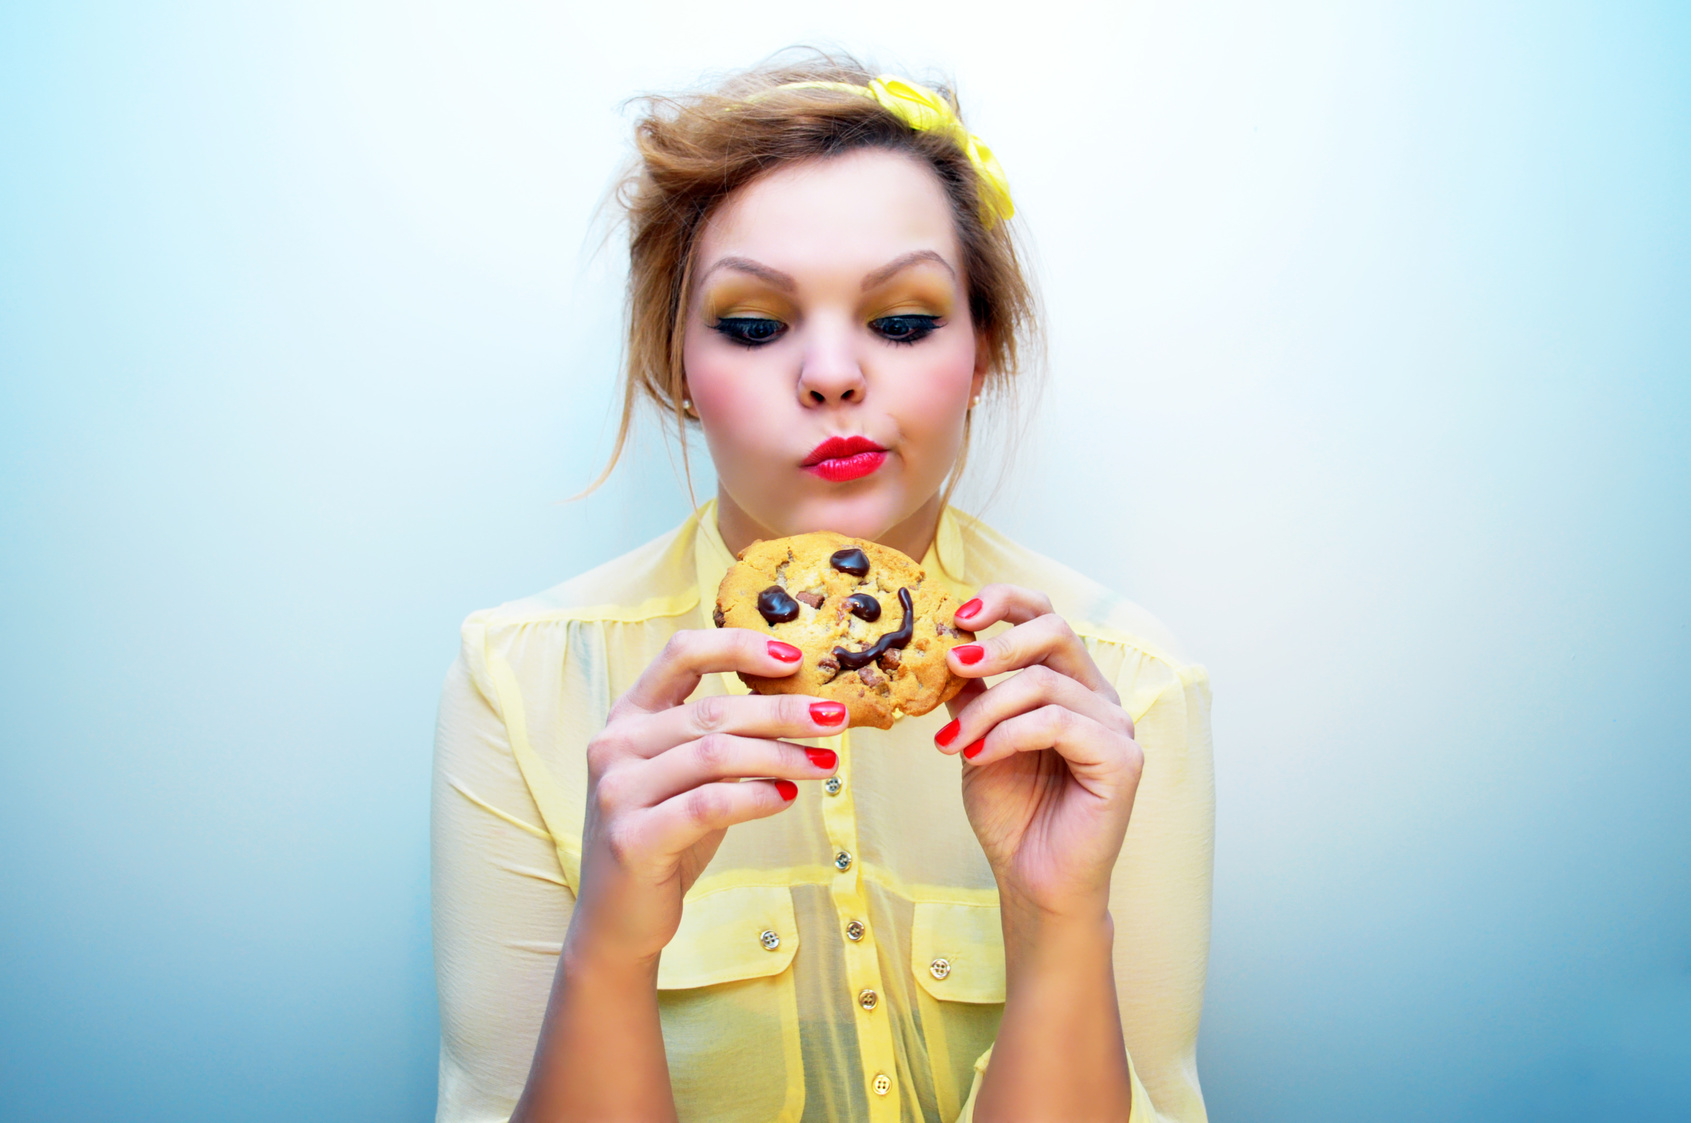 Trendy young woman is eating a smiling chocolate chip cookie.